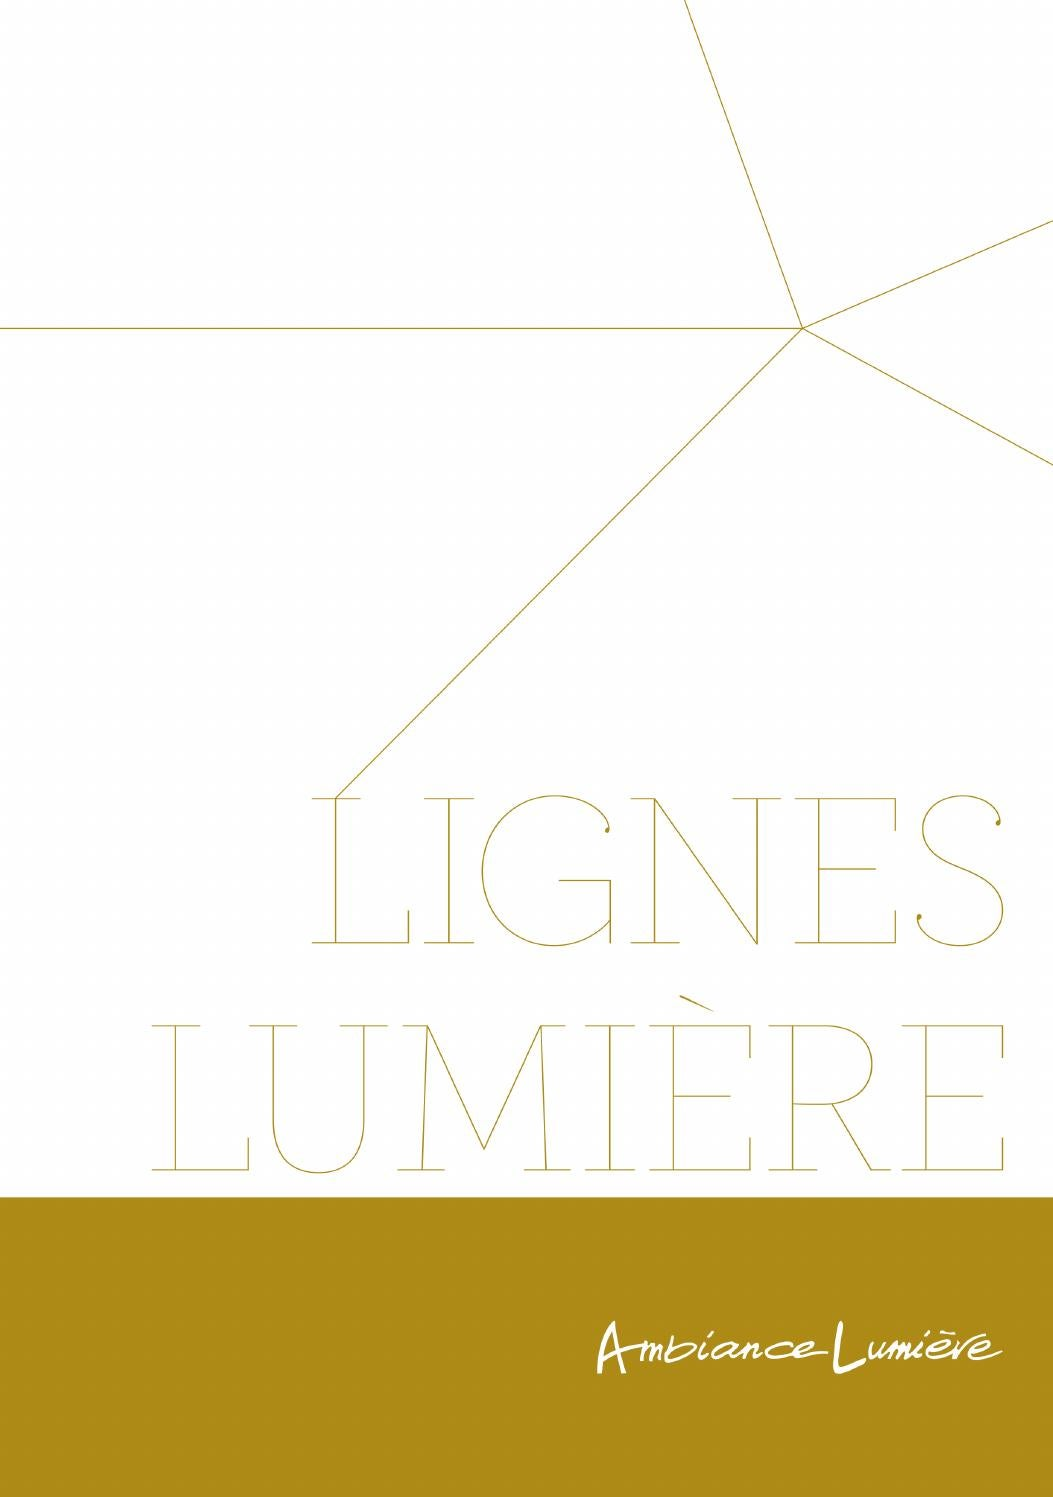 ambiance lumiere catalogue lignes lumiere by ambiance. Black Bedroom Furniture Sets. Home Design Ideas